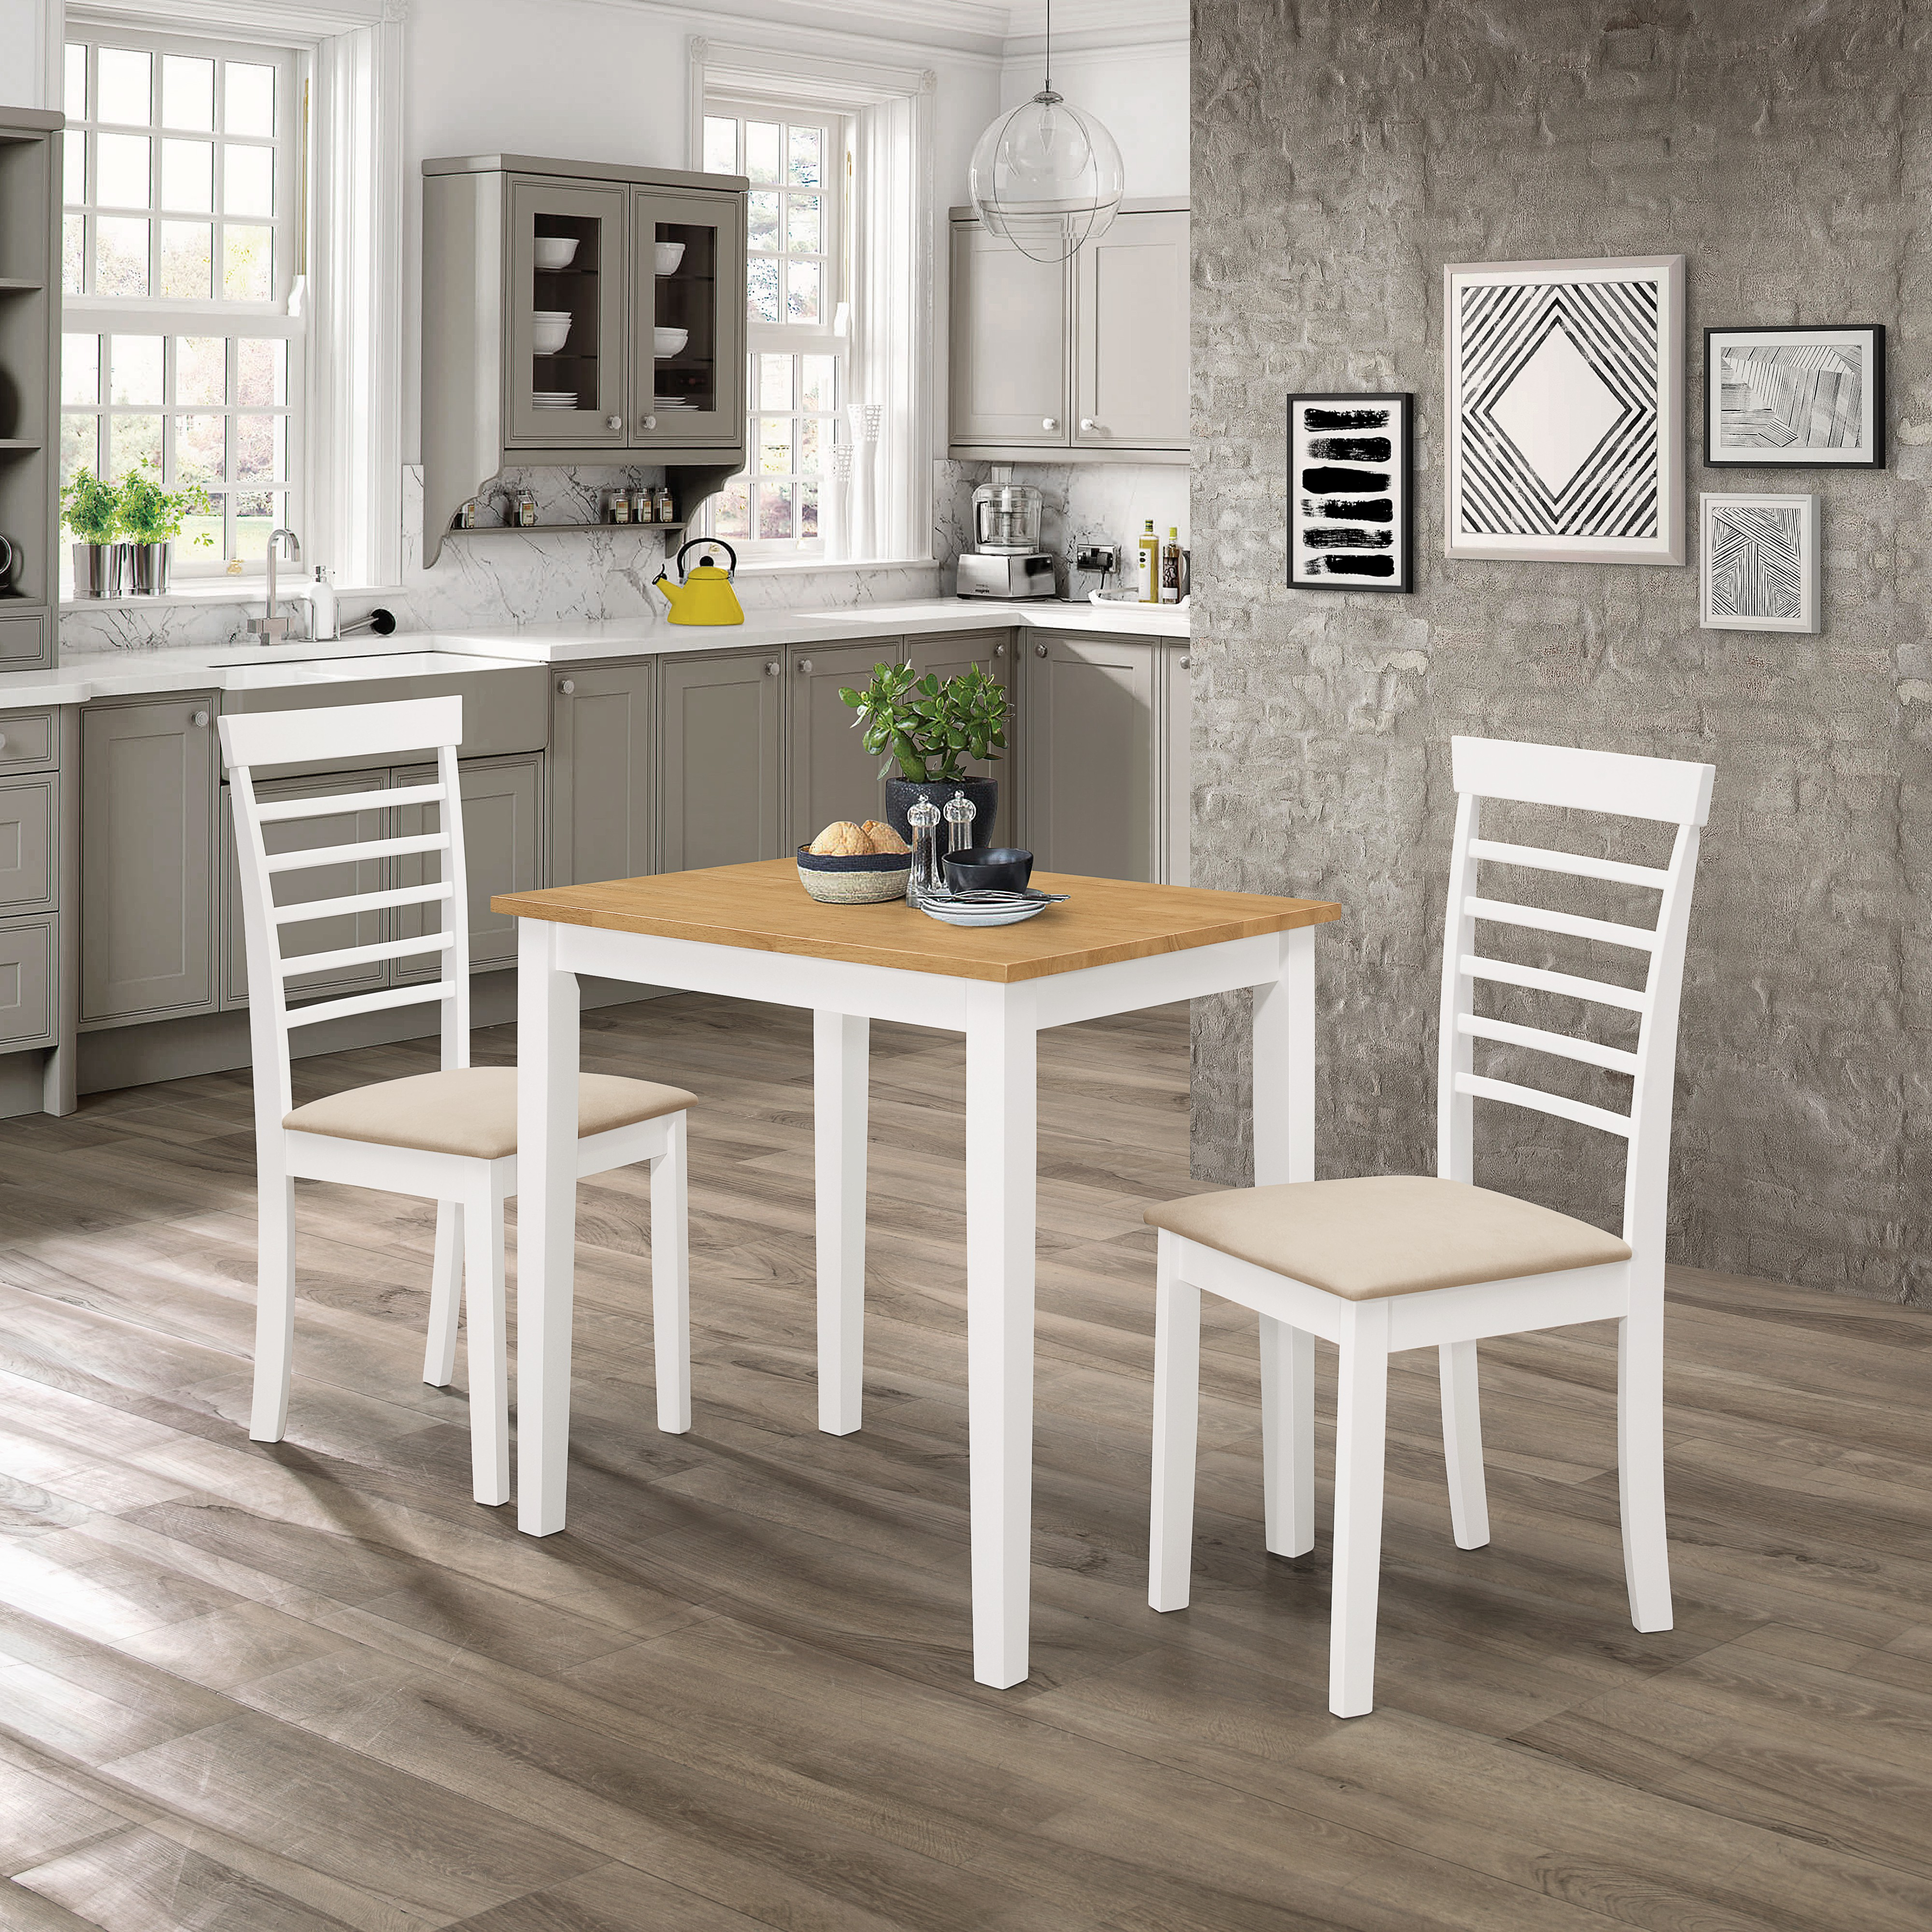 Ledbury Solid Rubber Wood Small Kitchen Dining Table Set Hallowood